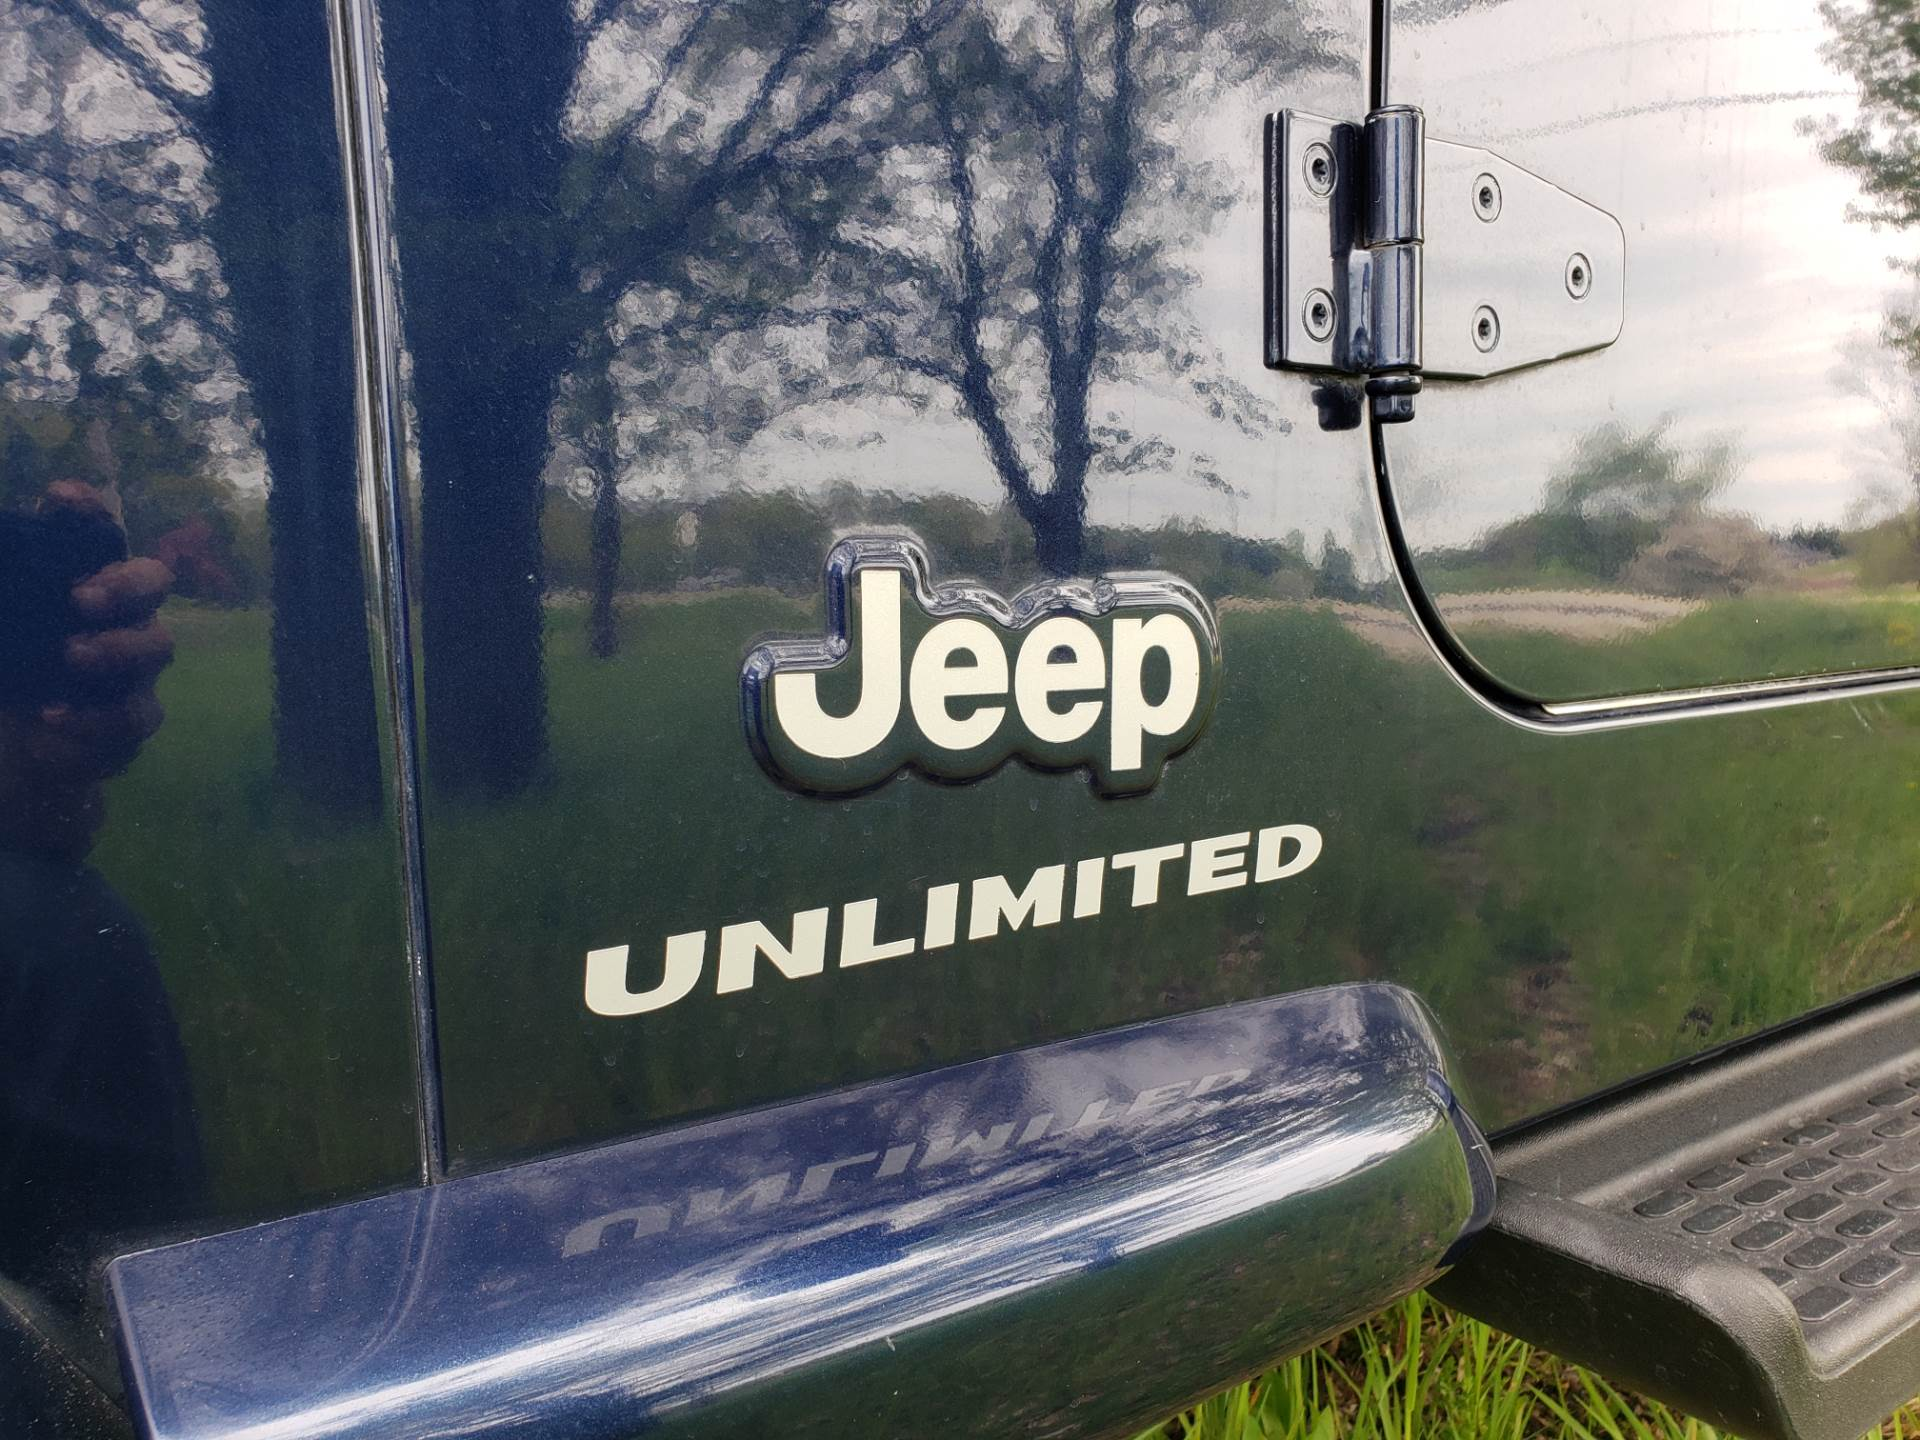 2006 Jeep Wrangler Unlimited 2dr SUV 4WD in Big Bend, Wisconsin - Photo 23